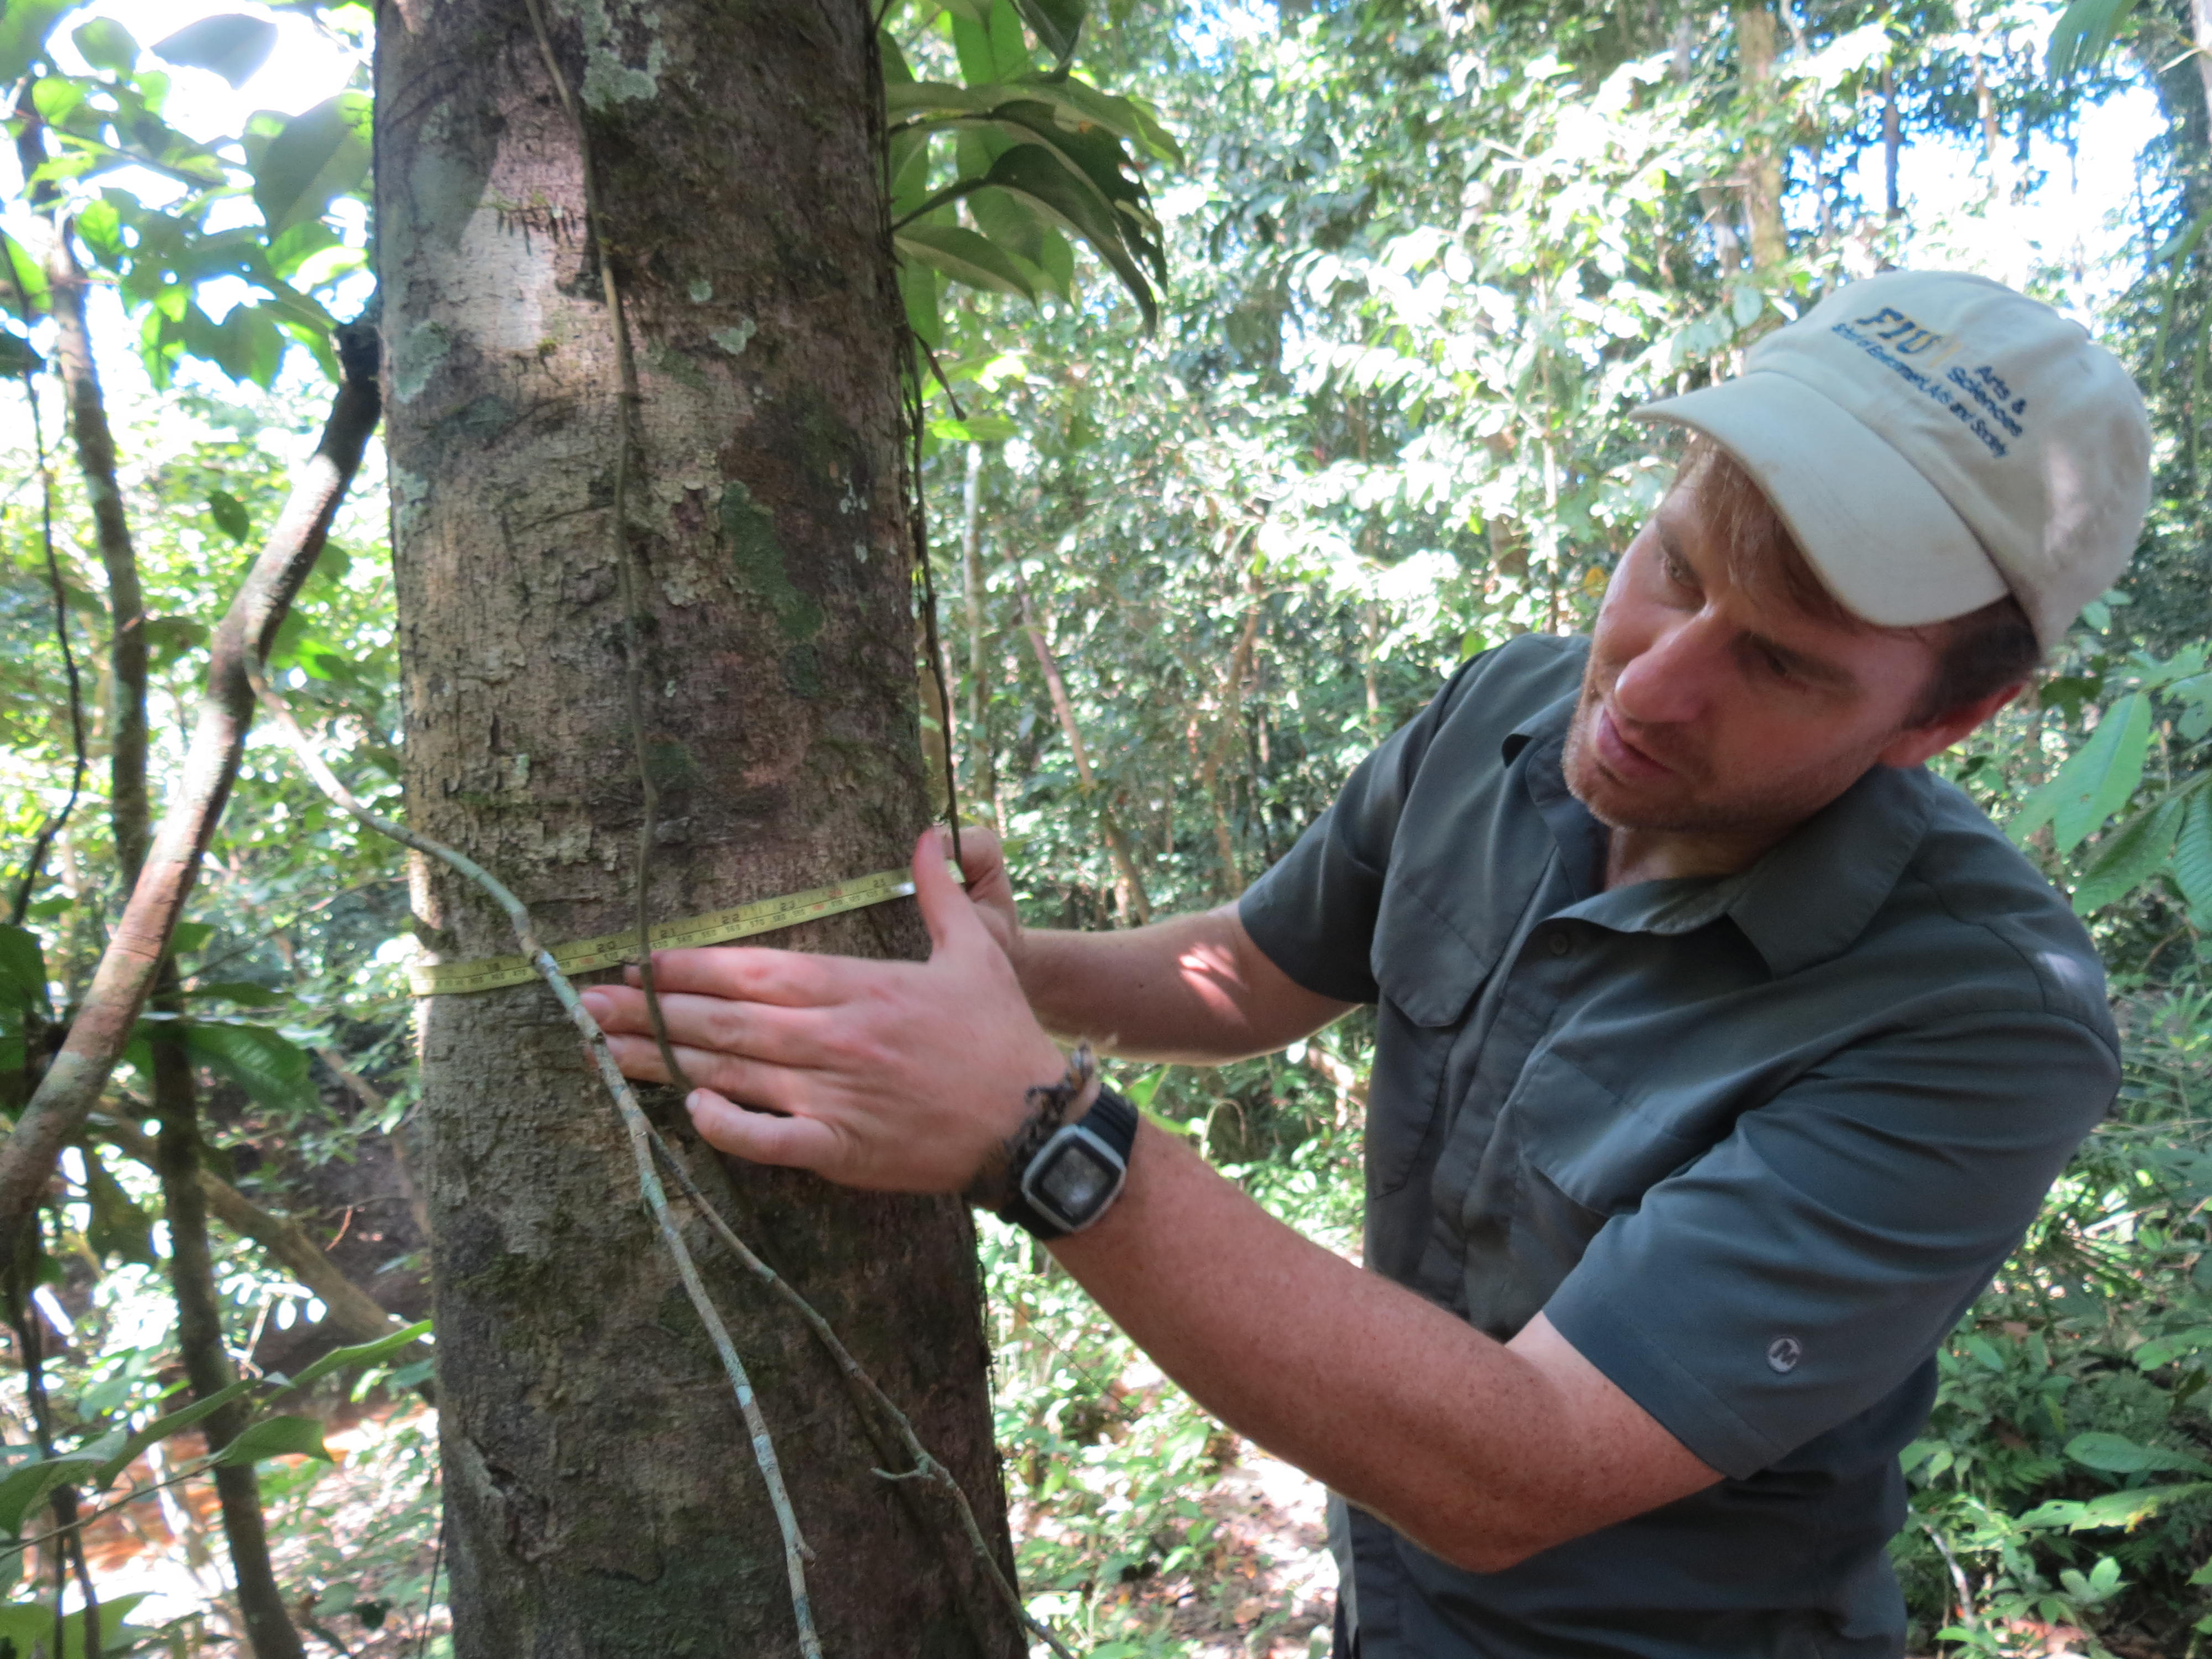 Kenneth Feeley measures the diameter of a tree in the lowland Amazonian rainforest.